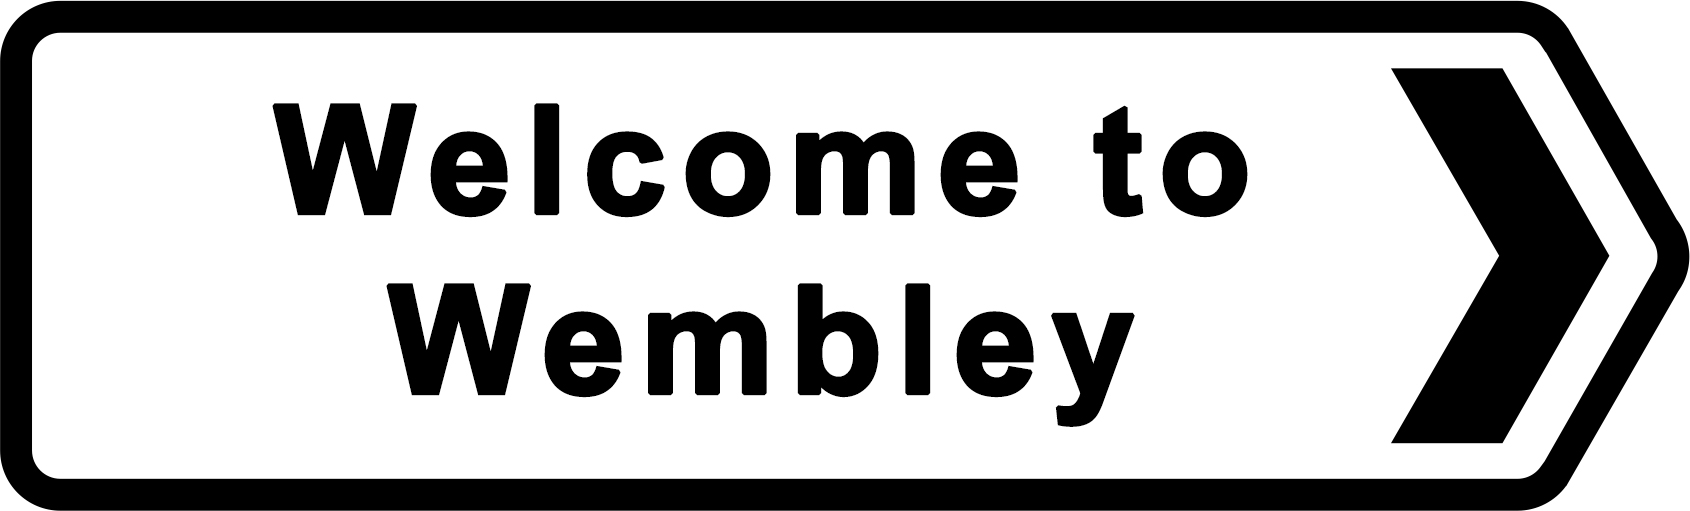 Wembley Stadium - Cheap Driving Schools Lessons in Wembley, Middlesex HA0 & HA9, London borough of Brent, Greater London